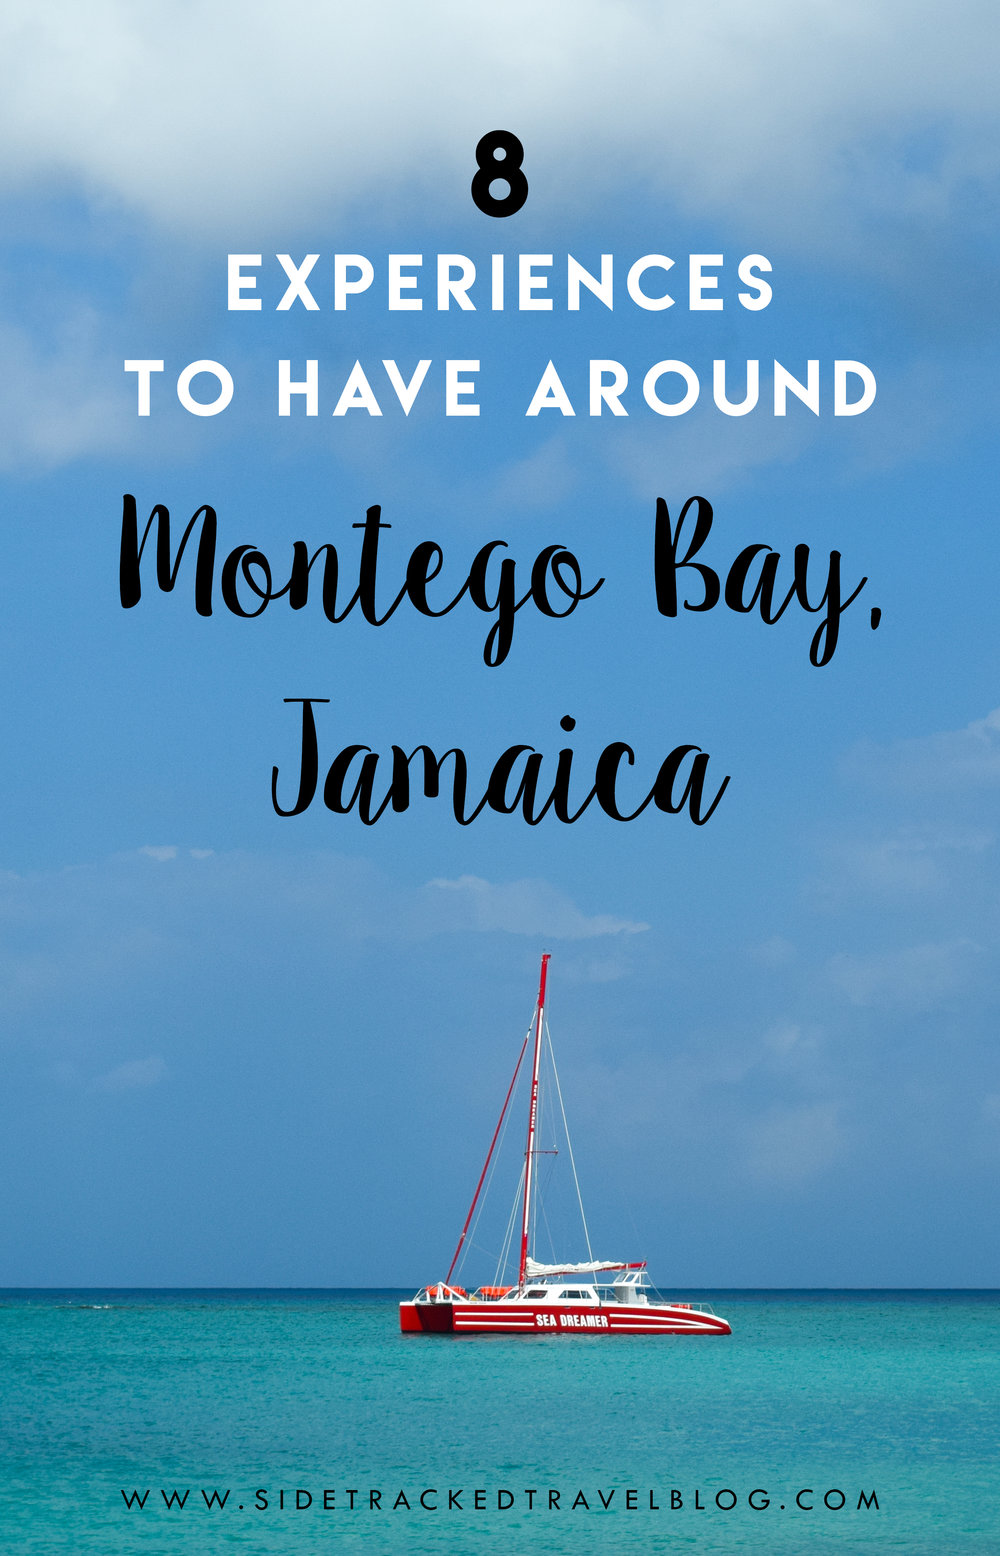 Whether it's the refreshing taste of an ice-cold Red Stripe, a bamboo raft cruise down the Martha Brae River,or that first bite of flavorful jerk chicken, Montego Bay offers memorable travel experiences unlike anywhere else in the Caribbean.